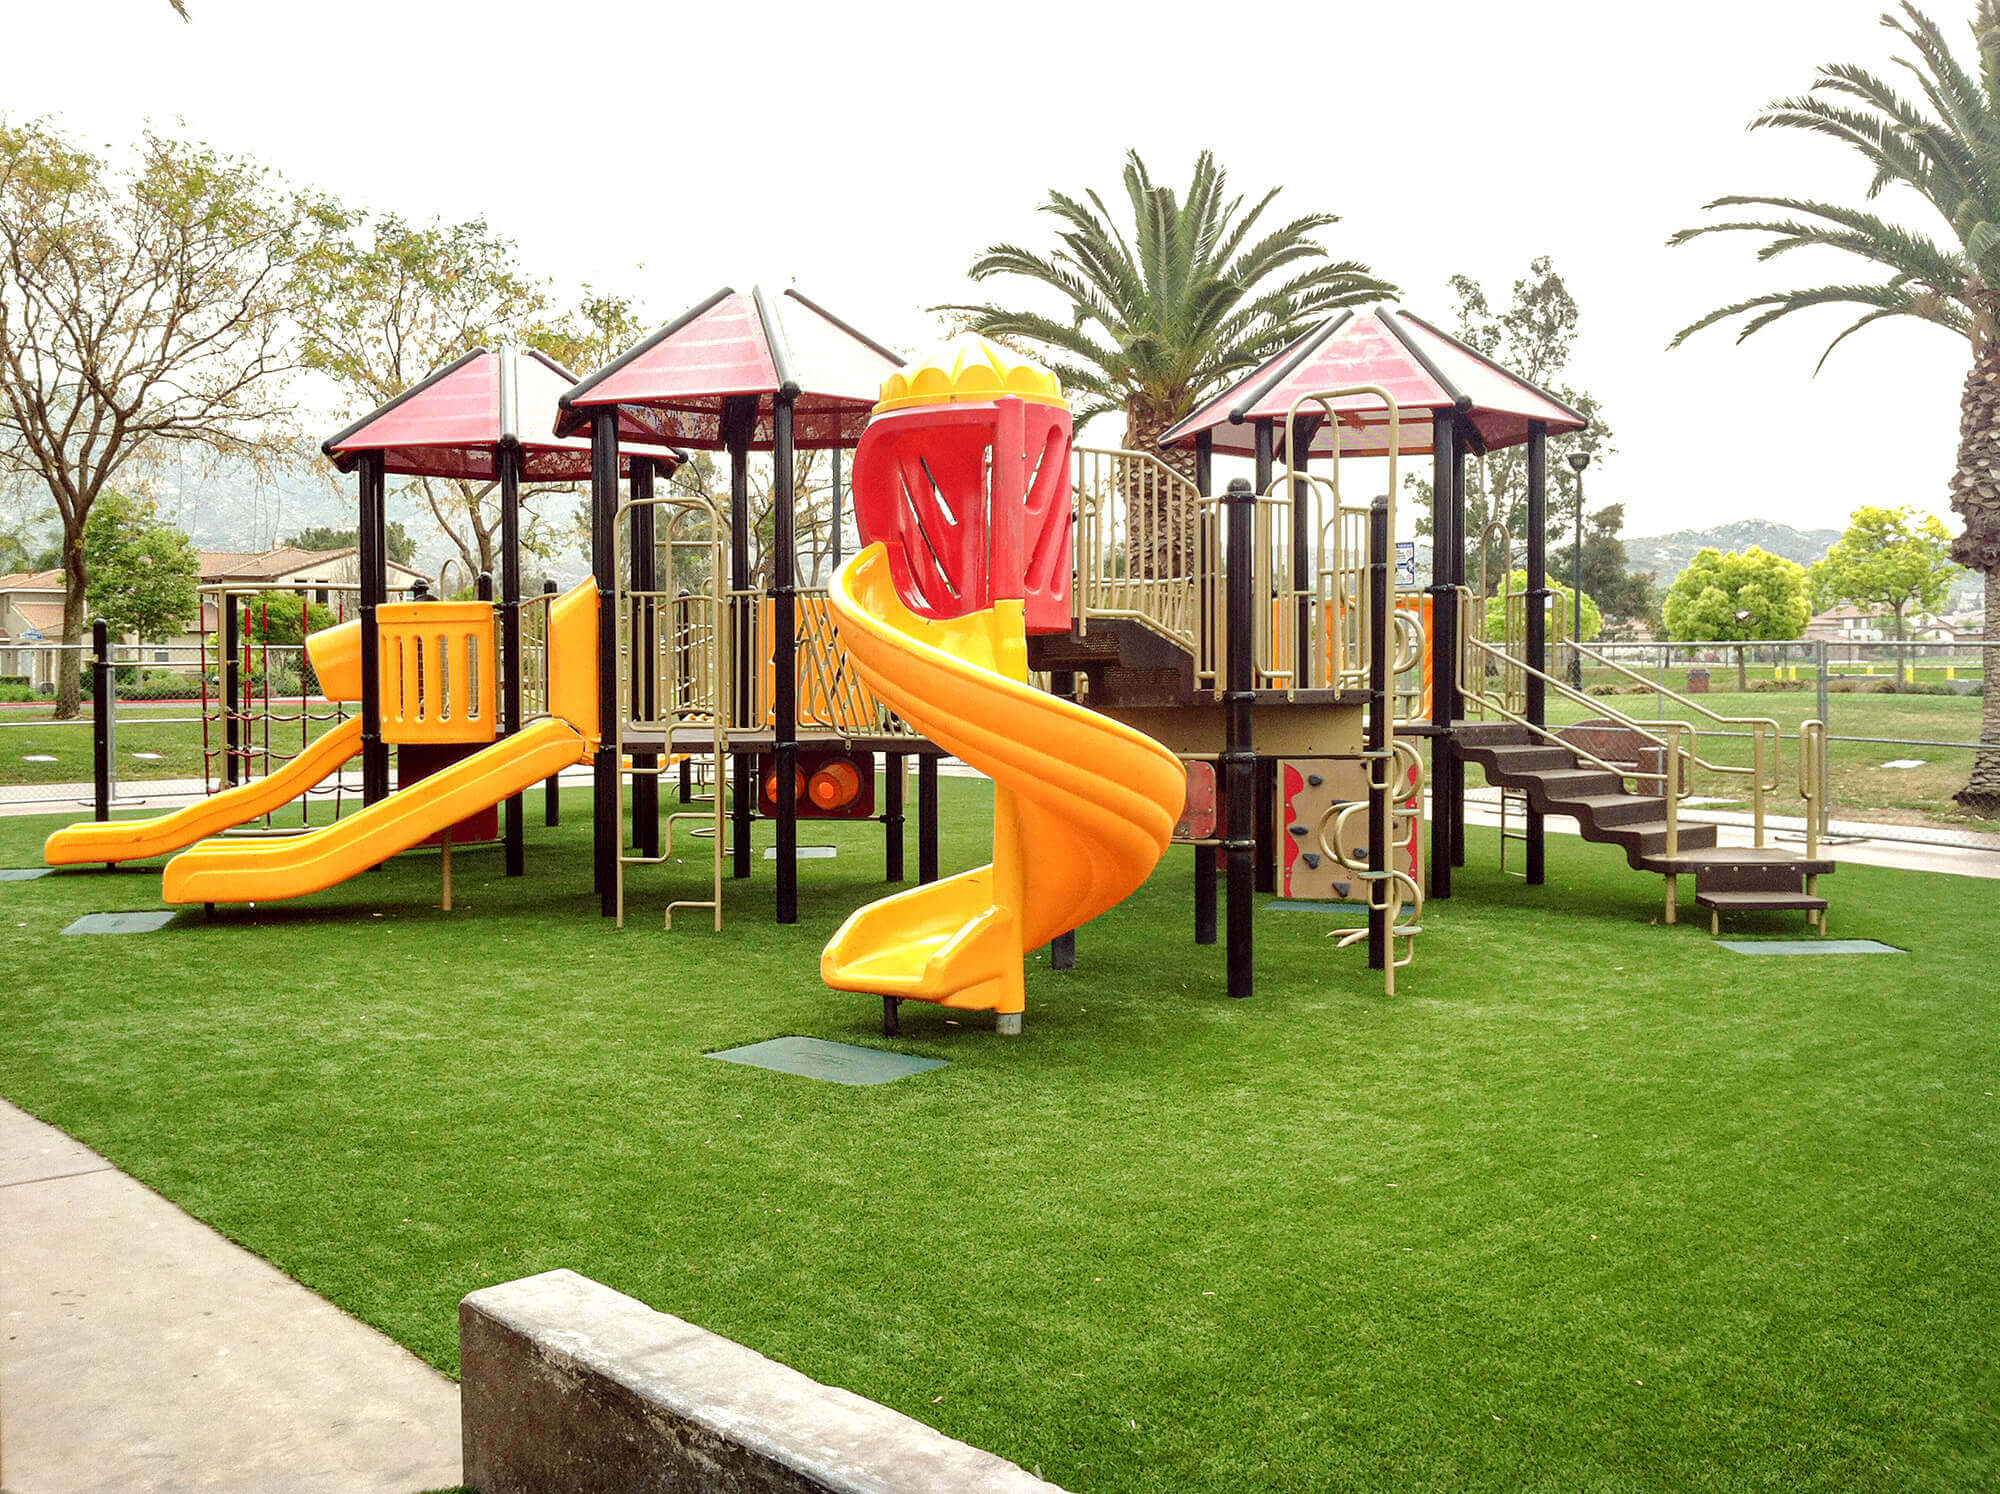 School playground with yellow slide and artificial turf surfacing